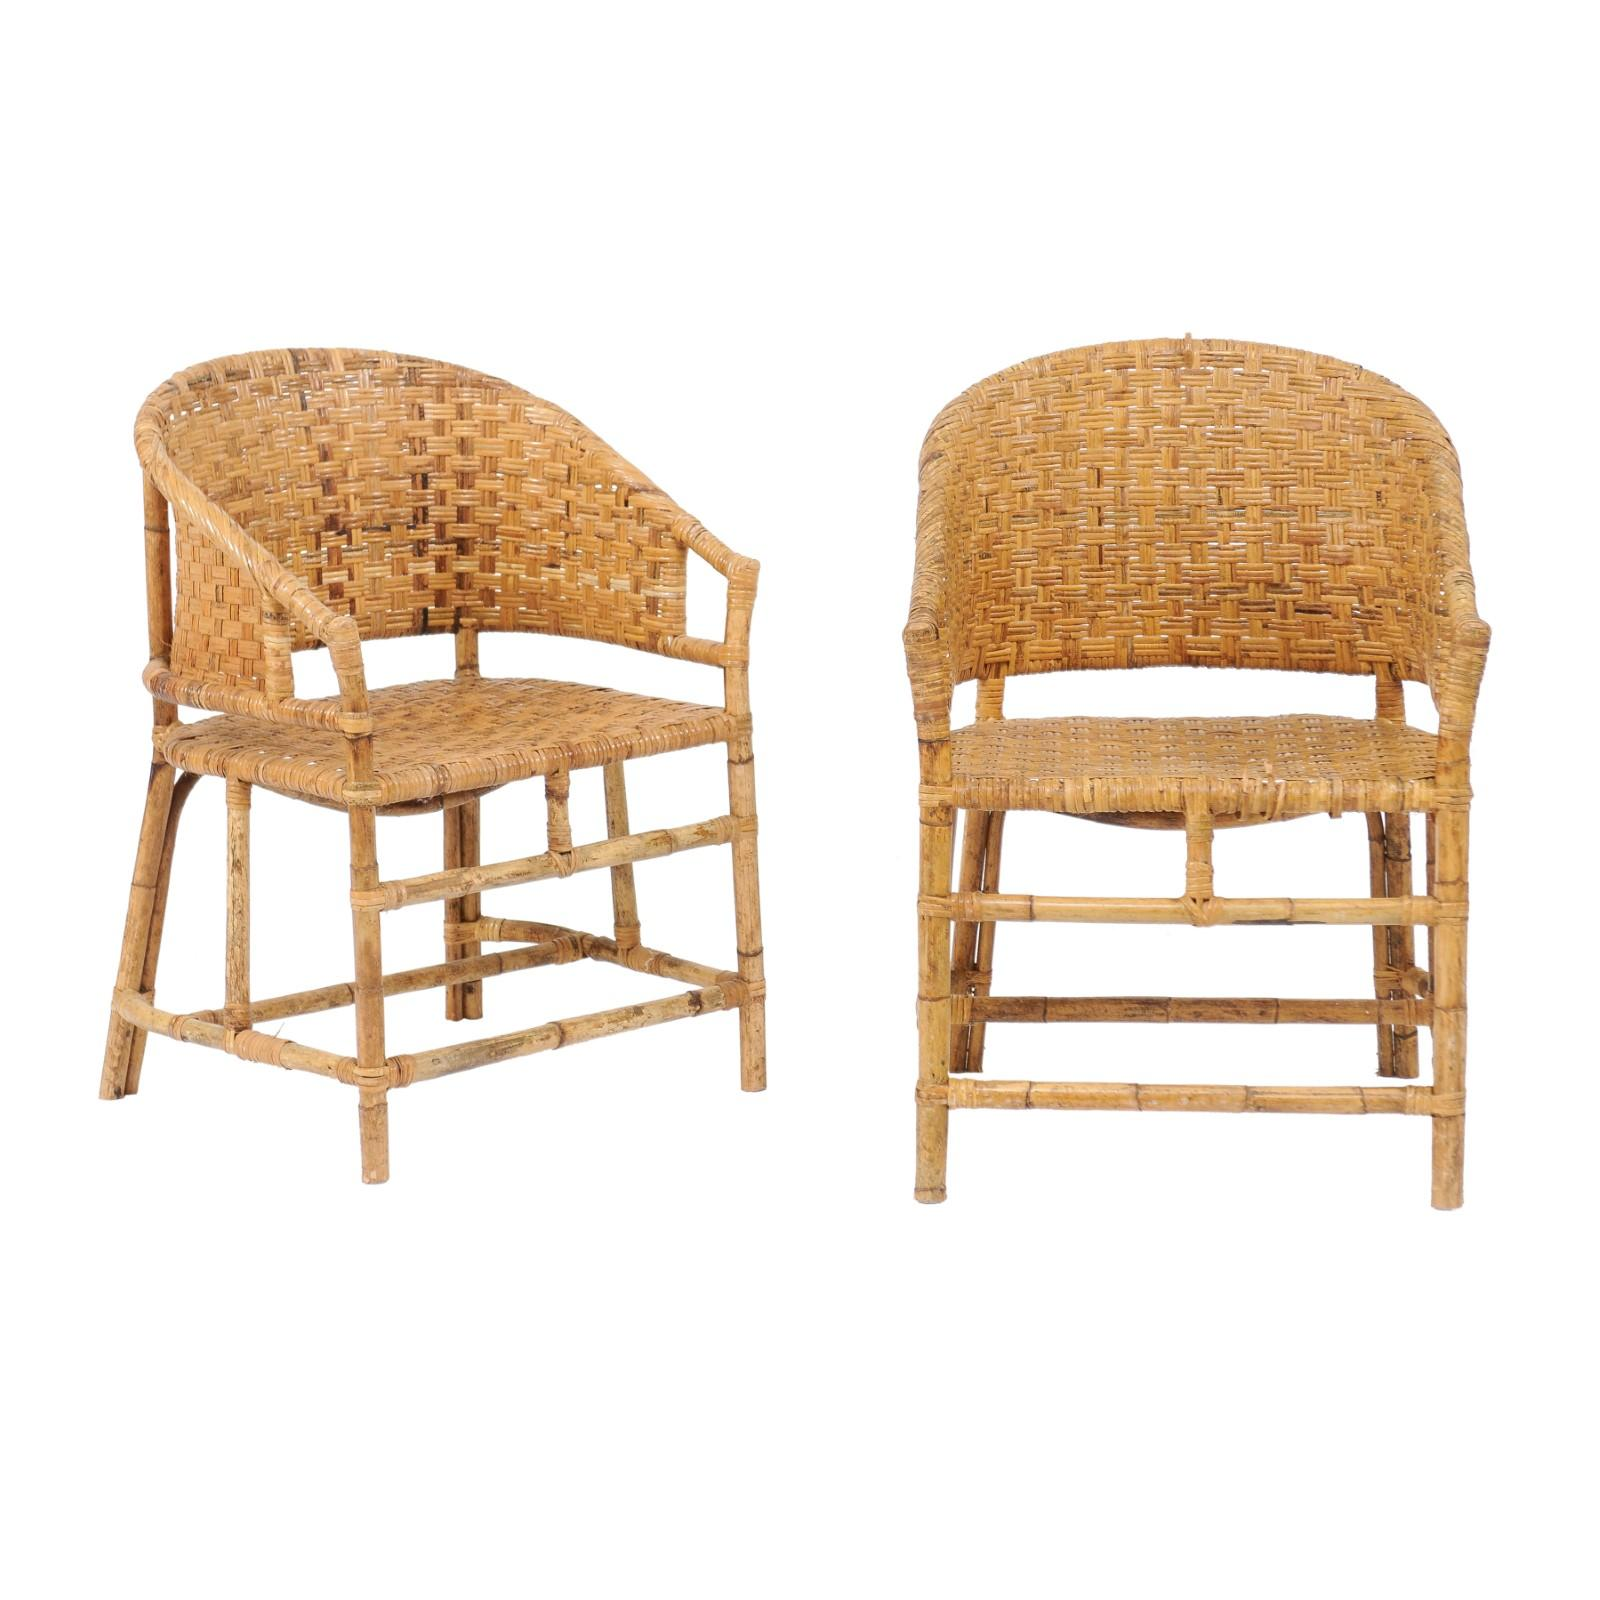 Bamboo Chairs Vintage French Midcentury Woven Rattan And Bamboo Chairs